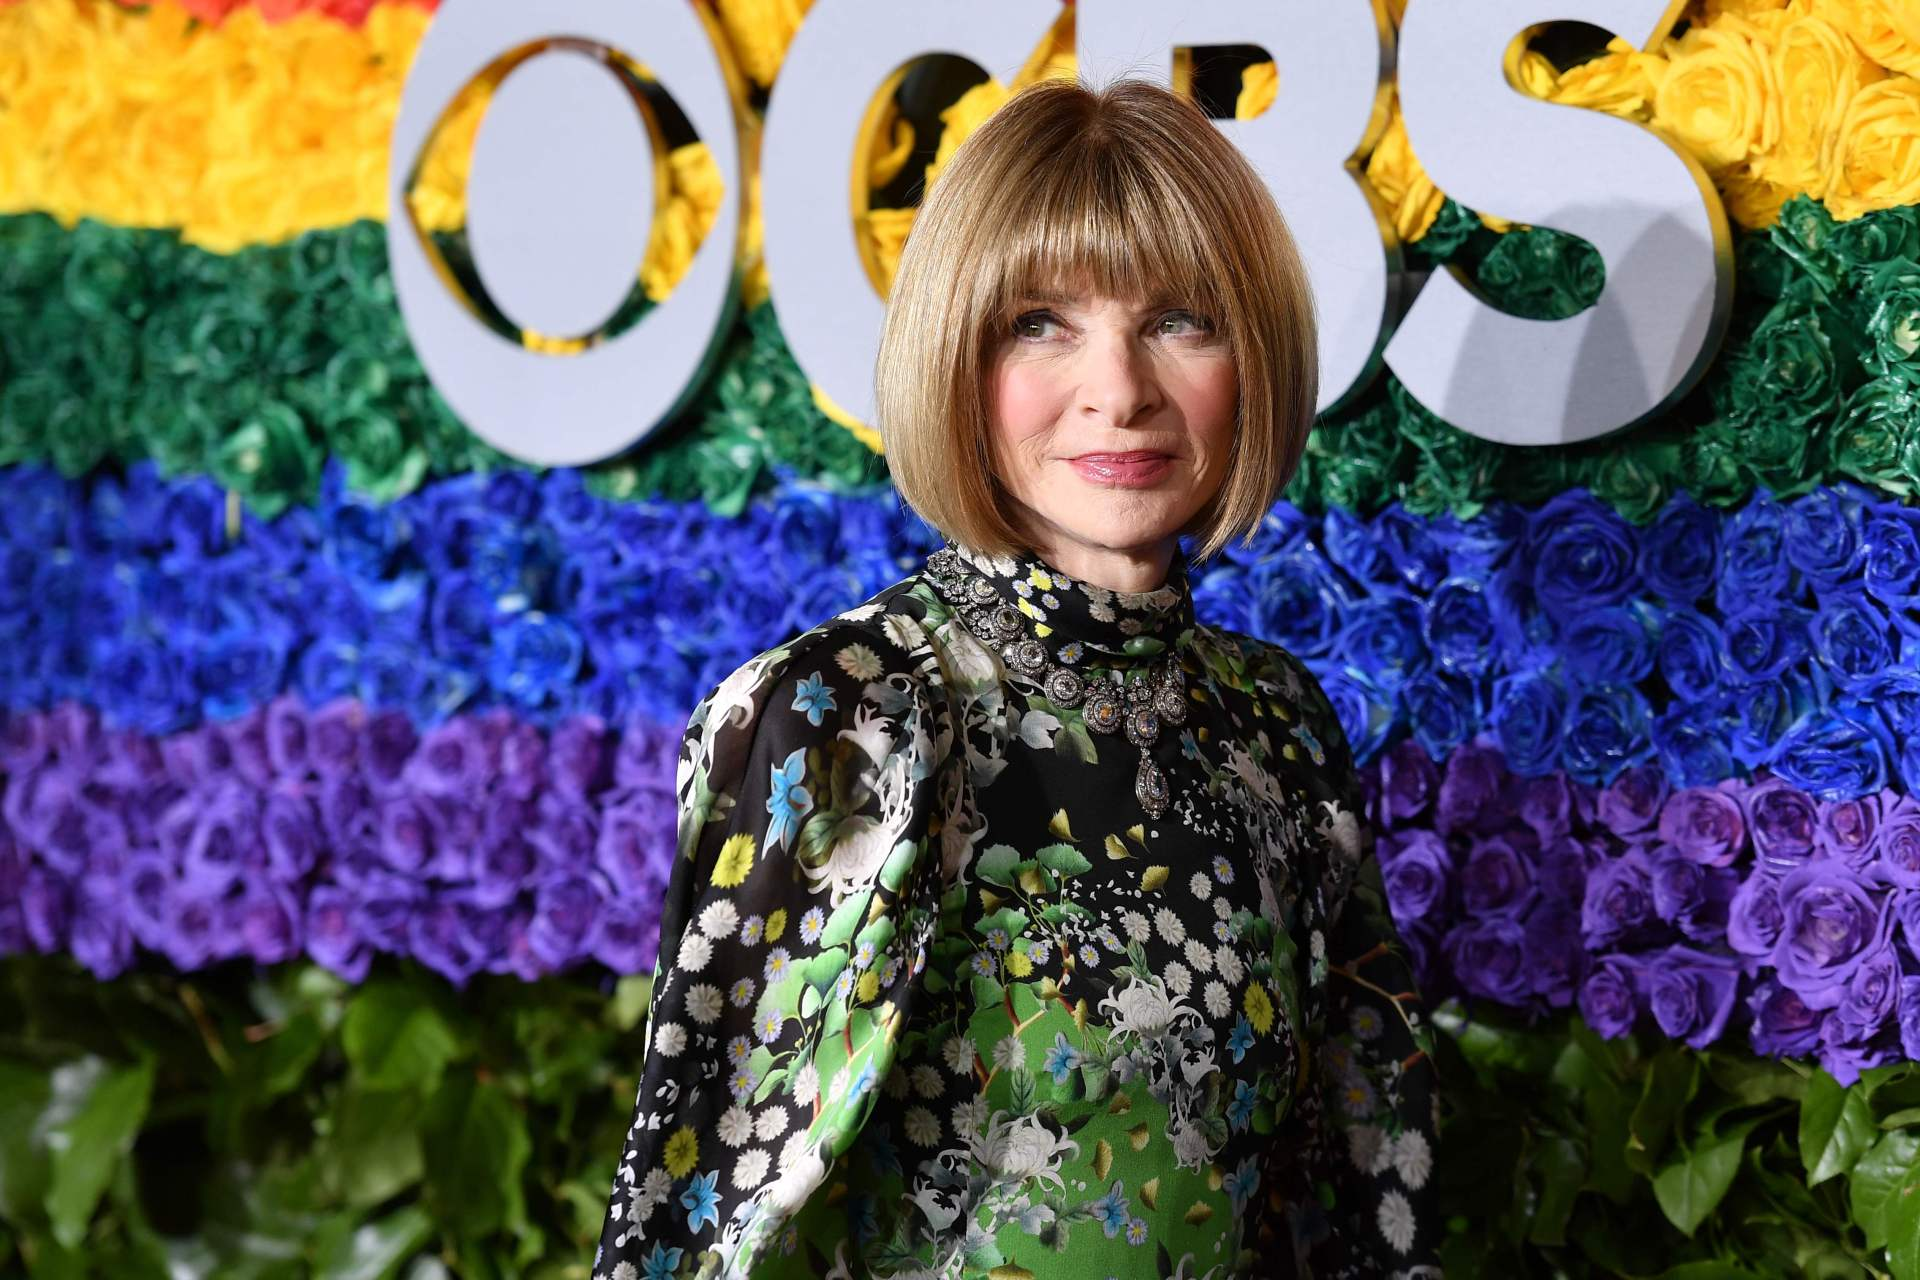 Anna Wintour gives flip flops her nod of approval